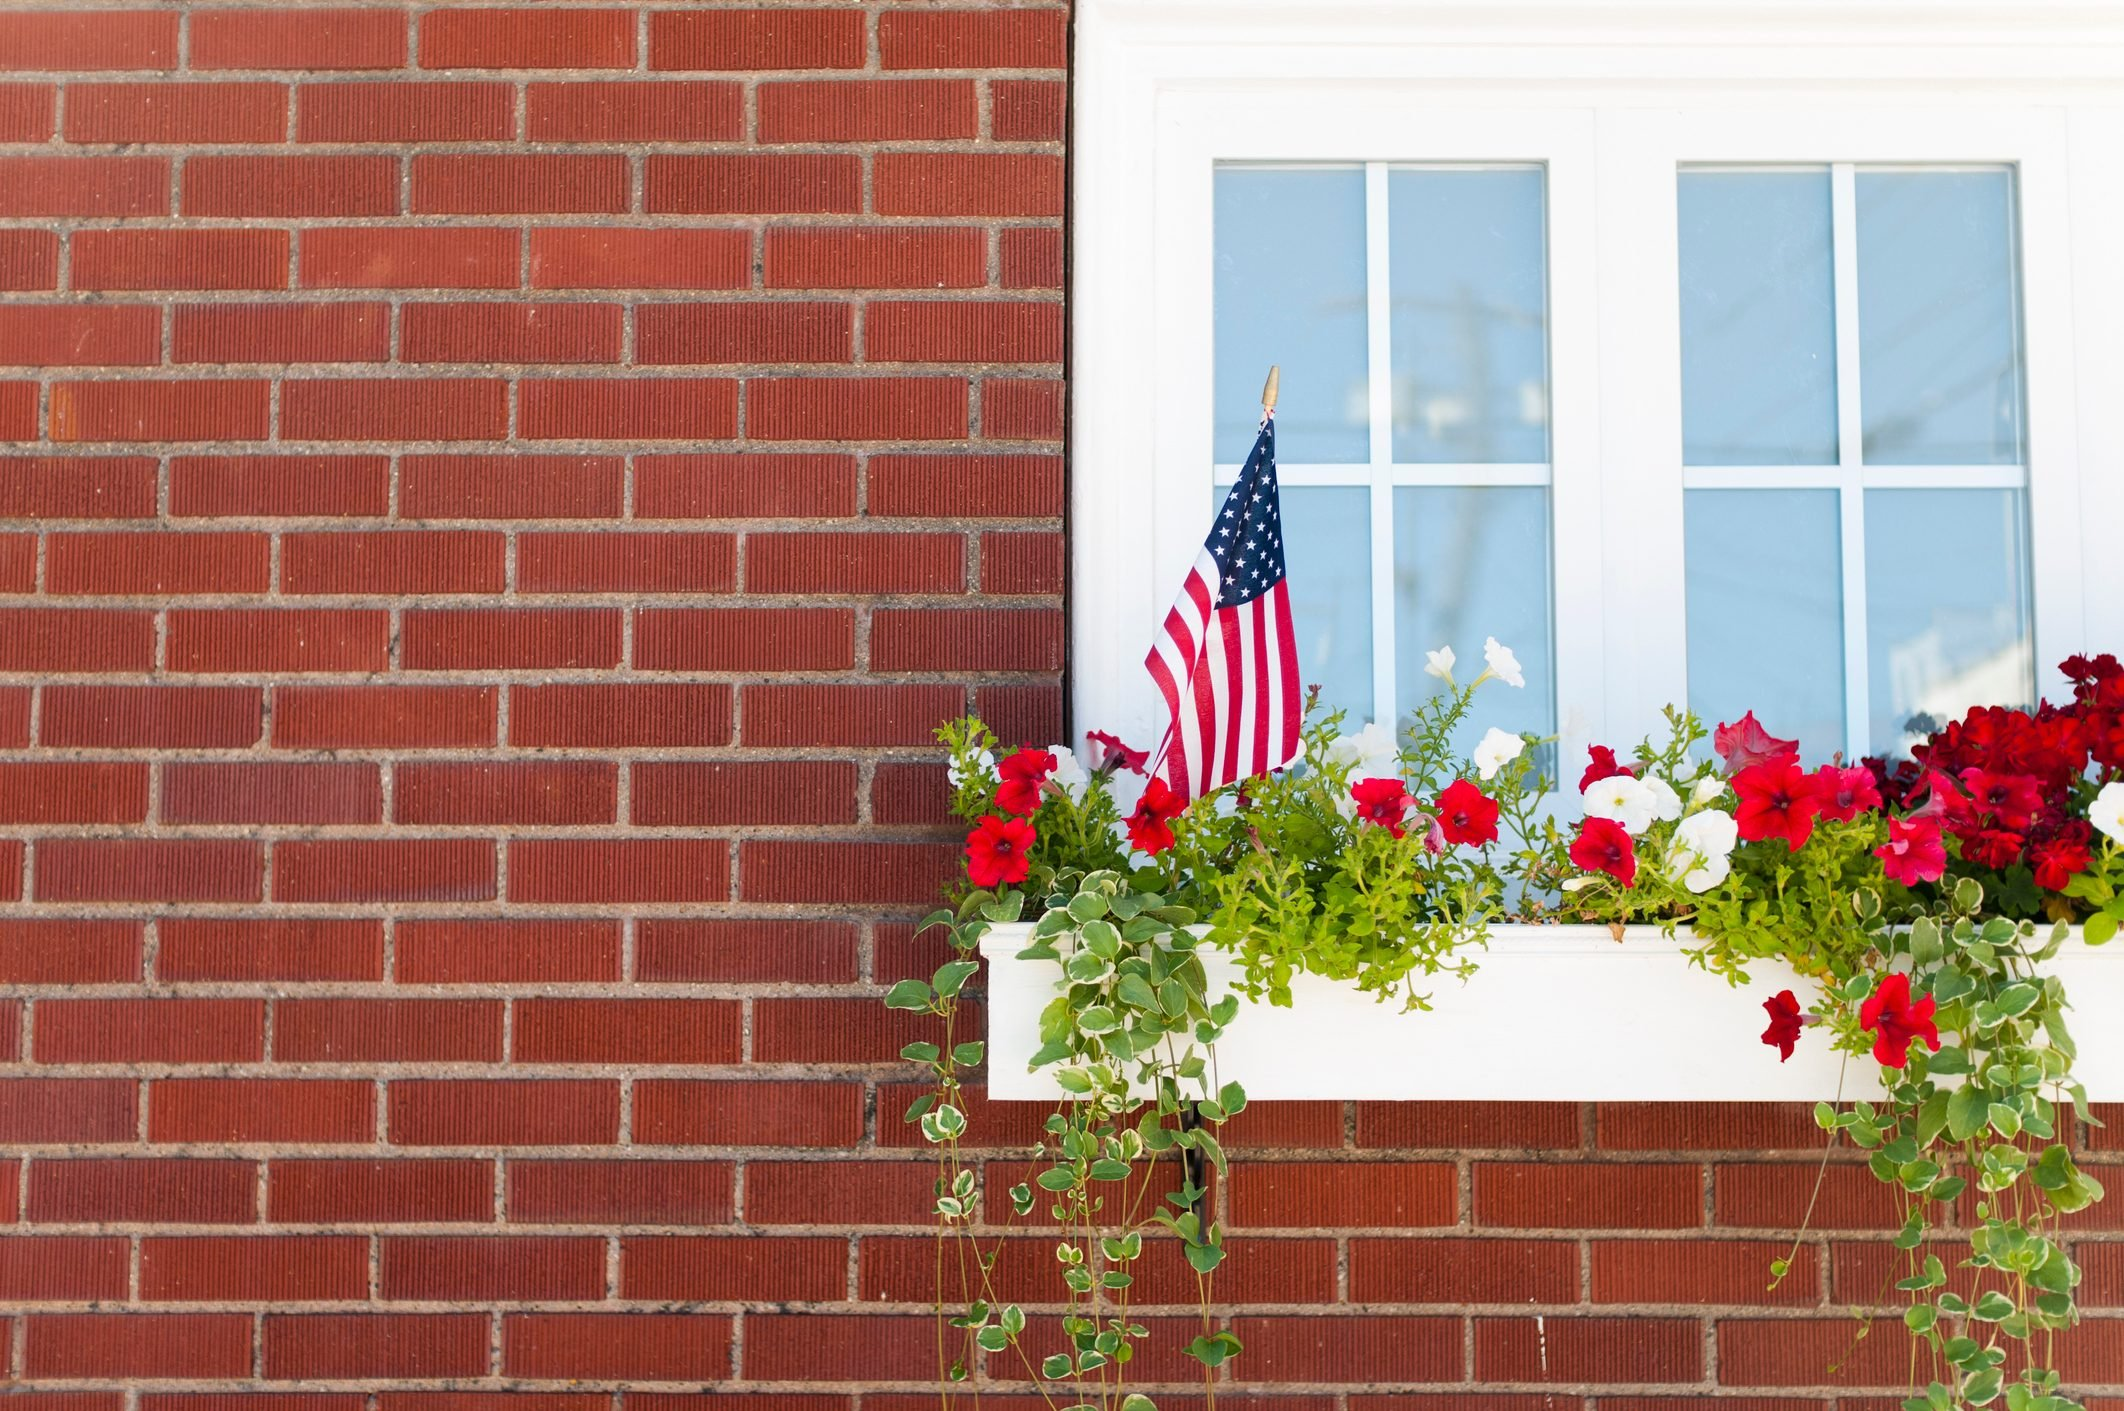 White washed window on a brick building with a flower filled window box and american flag sticking out of it.